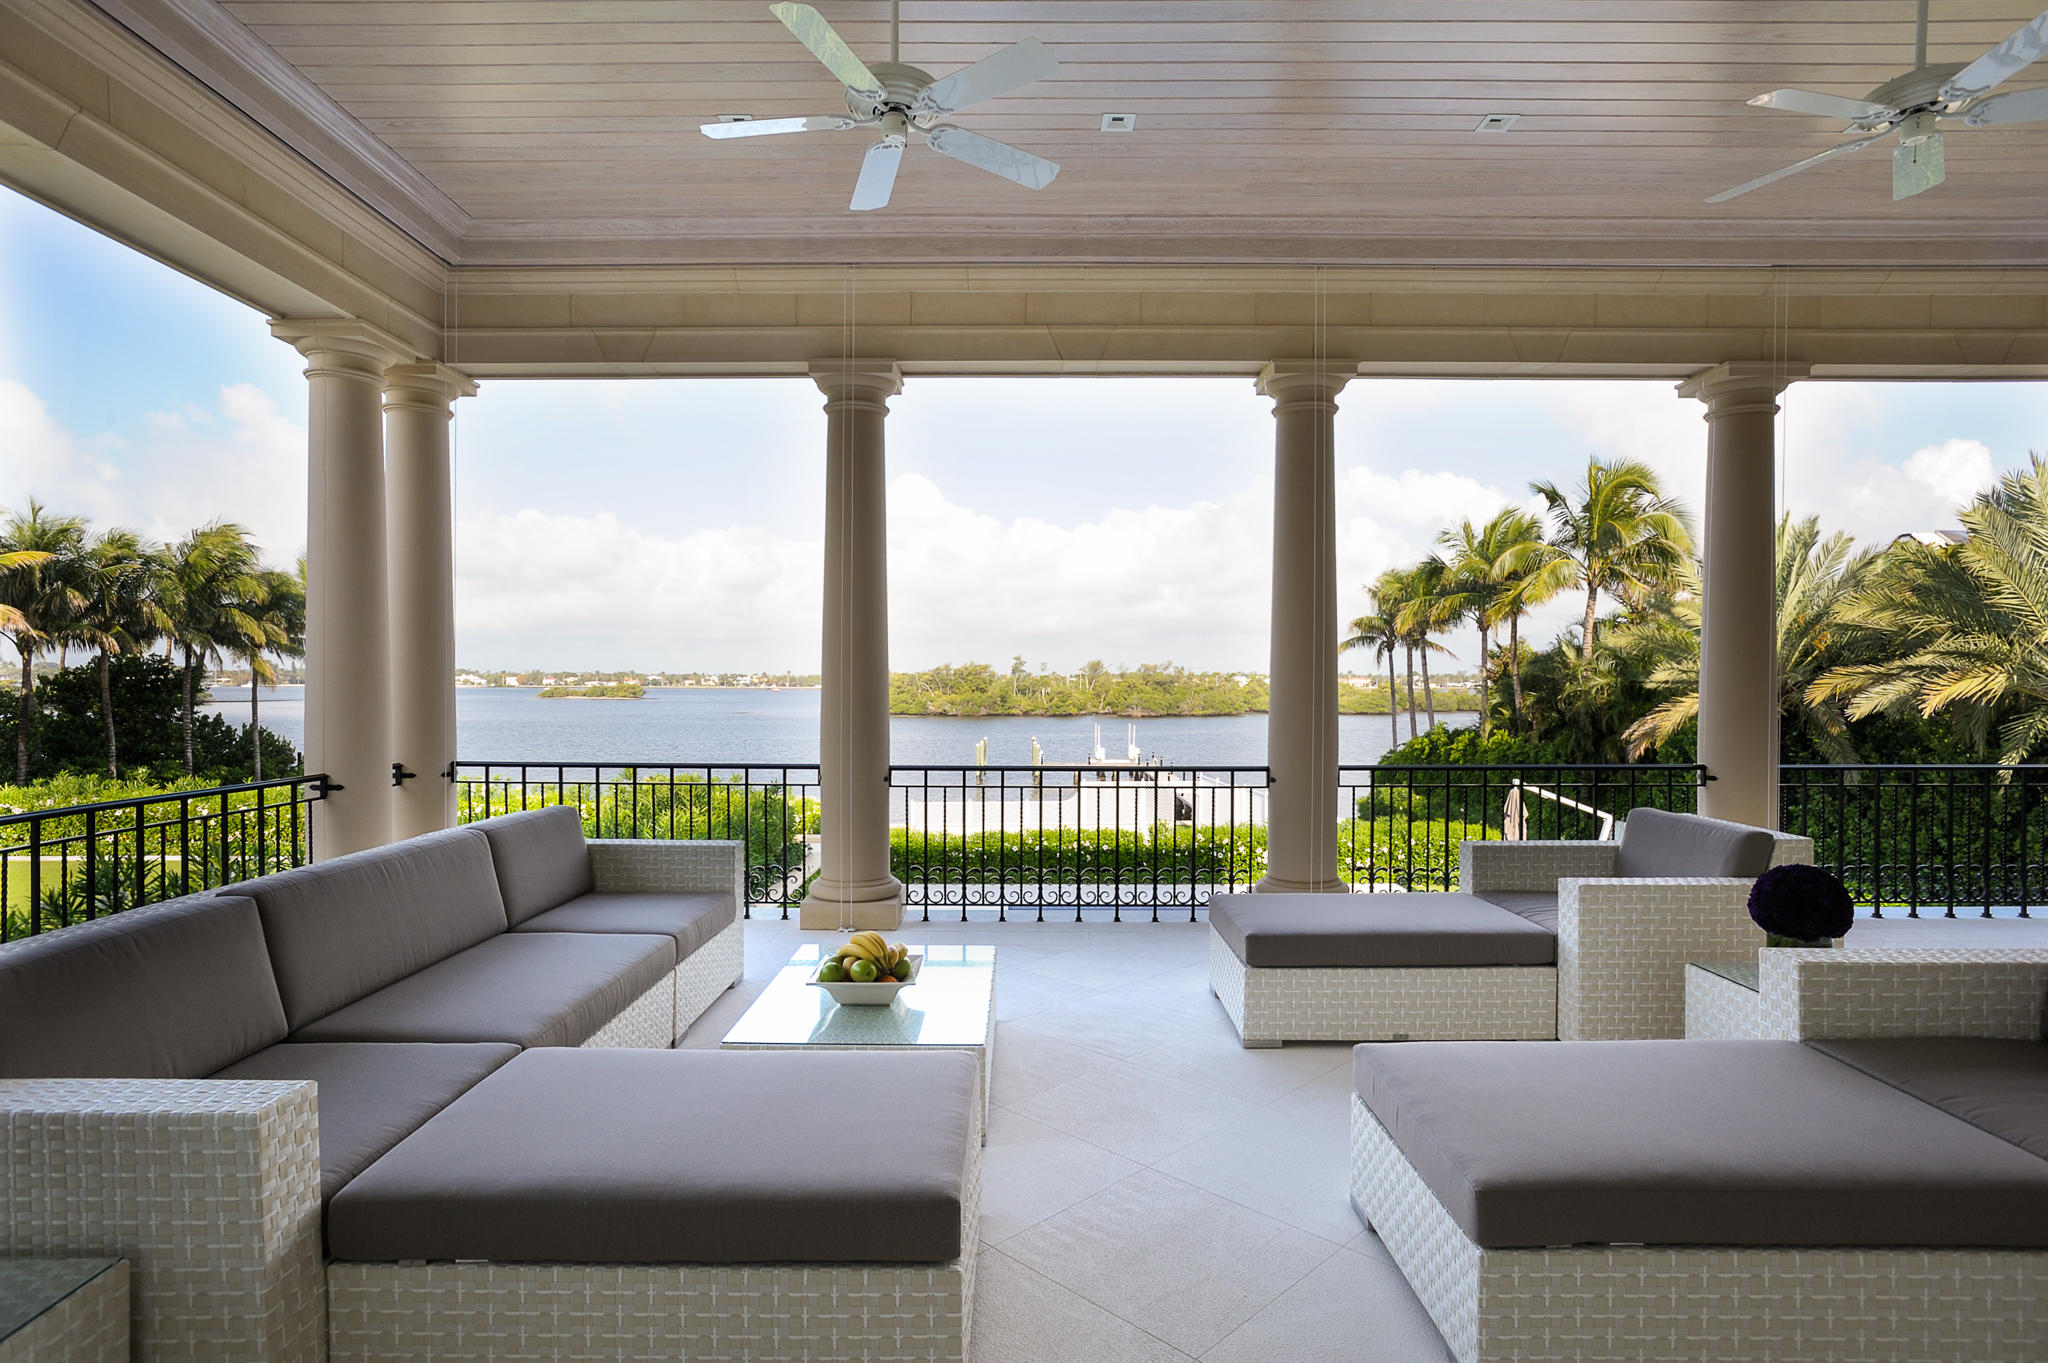 PALM BEACH PALM BEACH REAL ESTATE